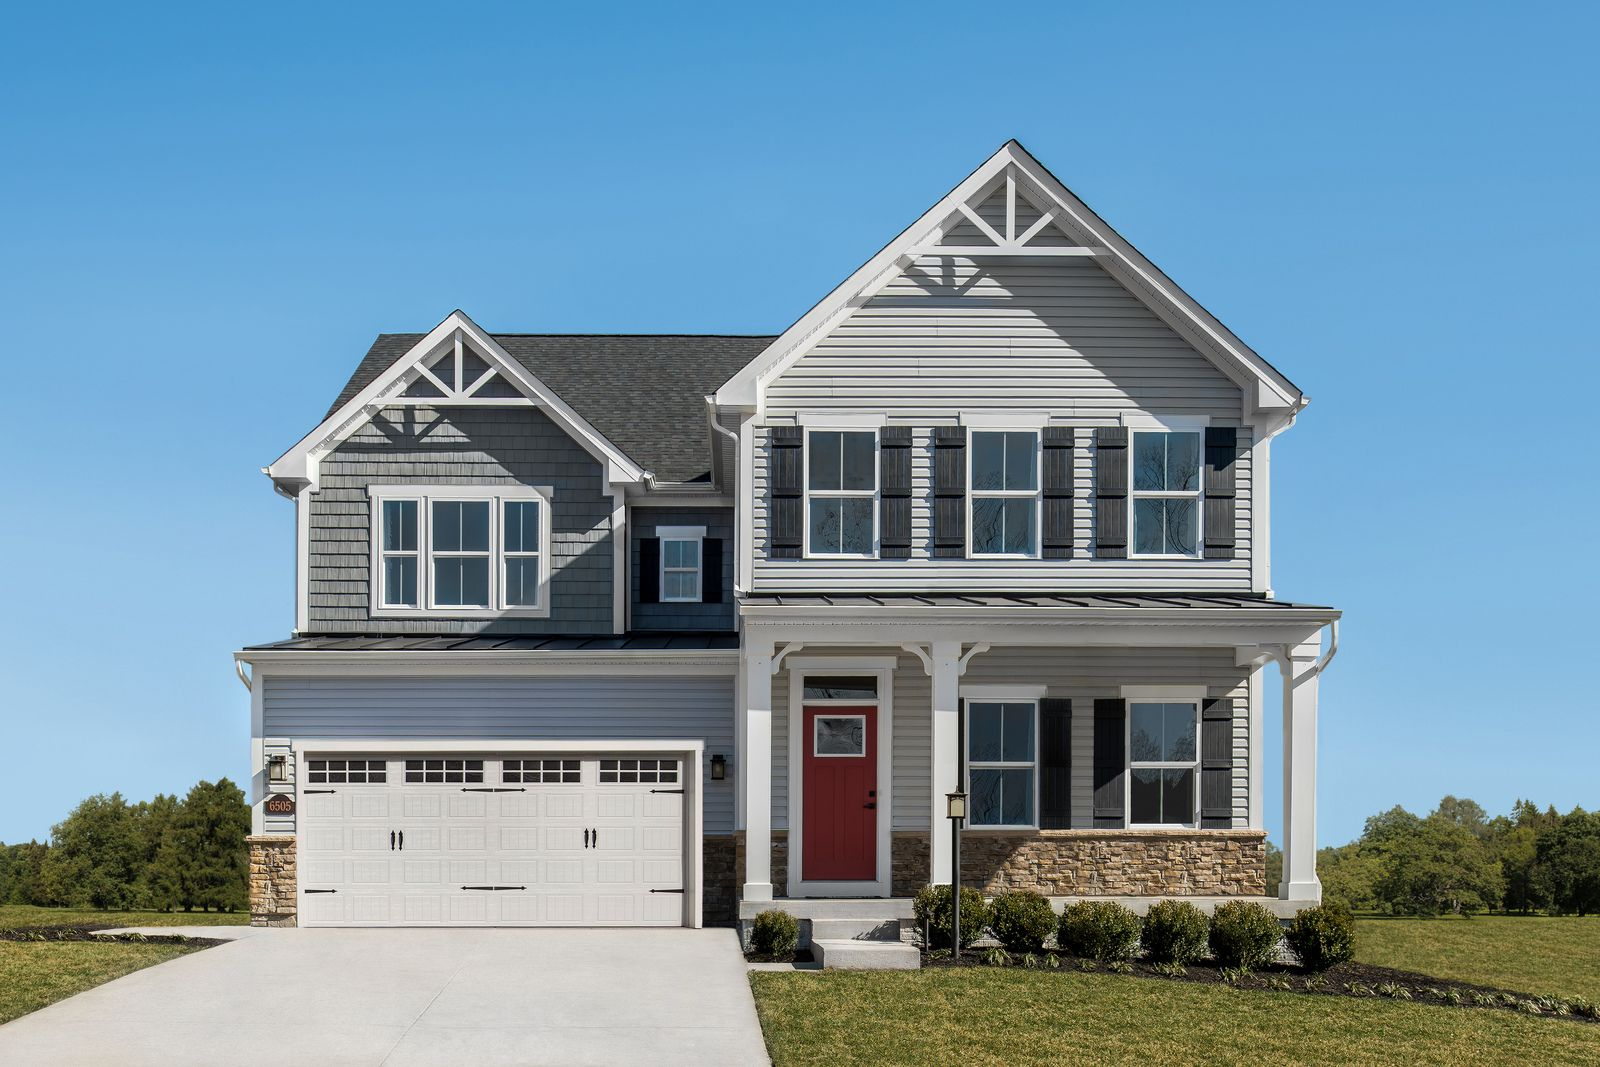 WELCOME HOME TO JUNIPER WOODS:Only 40 new luxury homes in Peters Township with top-ranked schools, minutes to I-79, Rt. 19, parks, shopping, dining, and golf.Click here to schedule your visit.